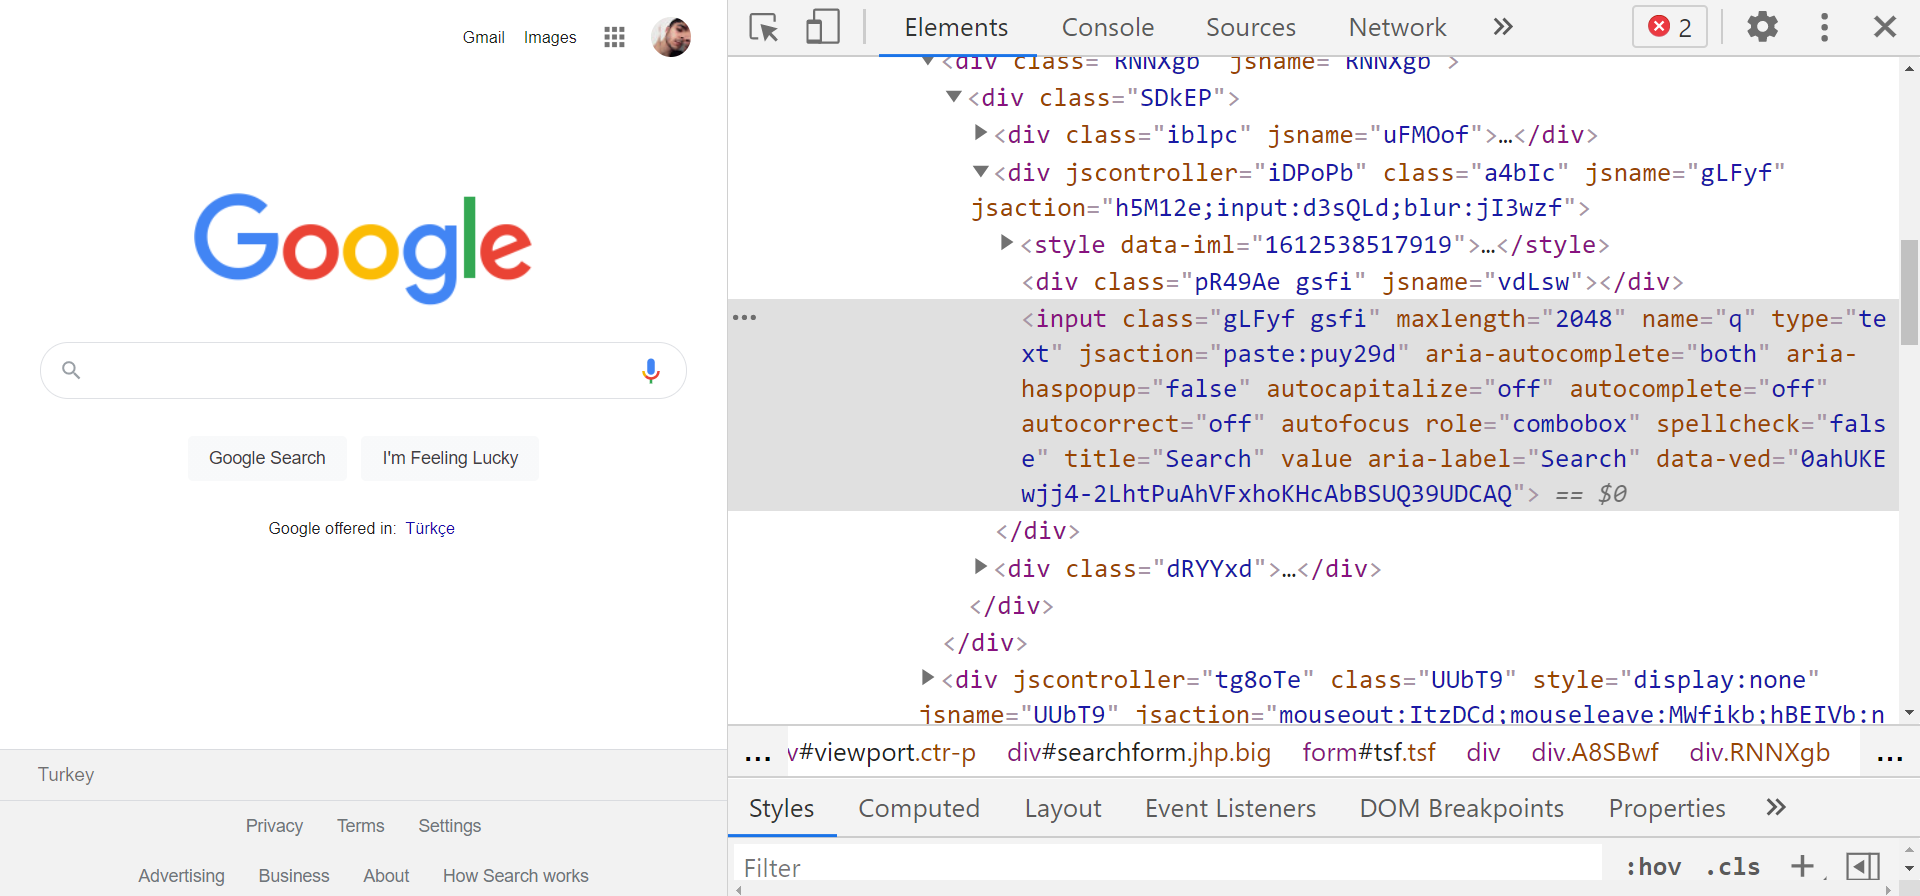 Chrome DevTools showing HTML of search box.